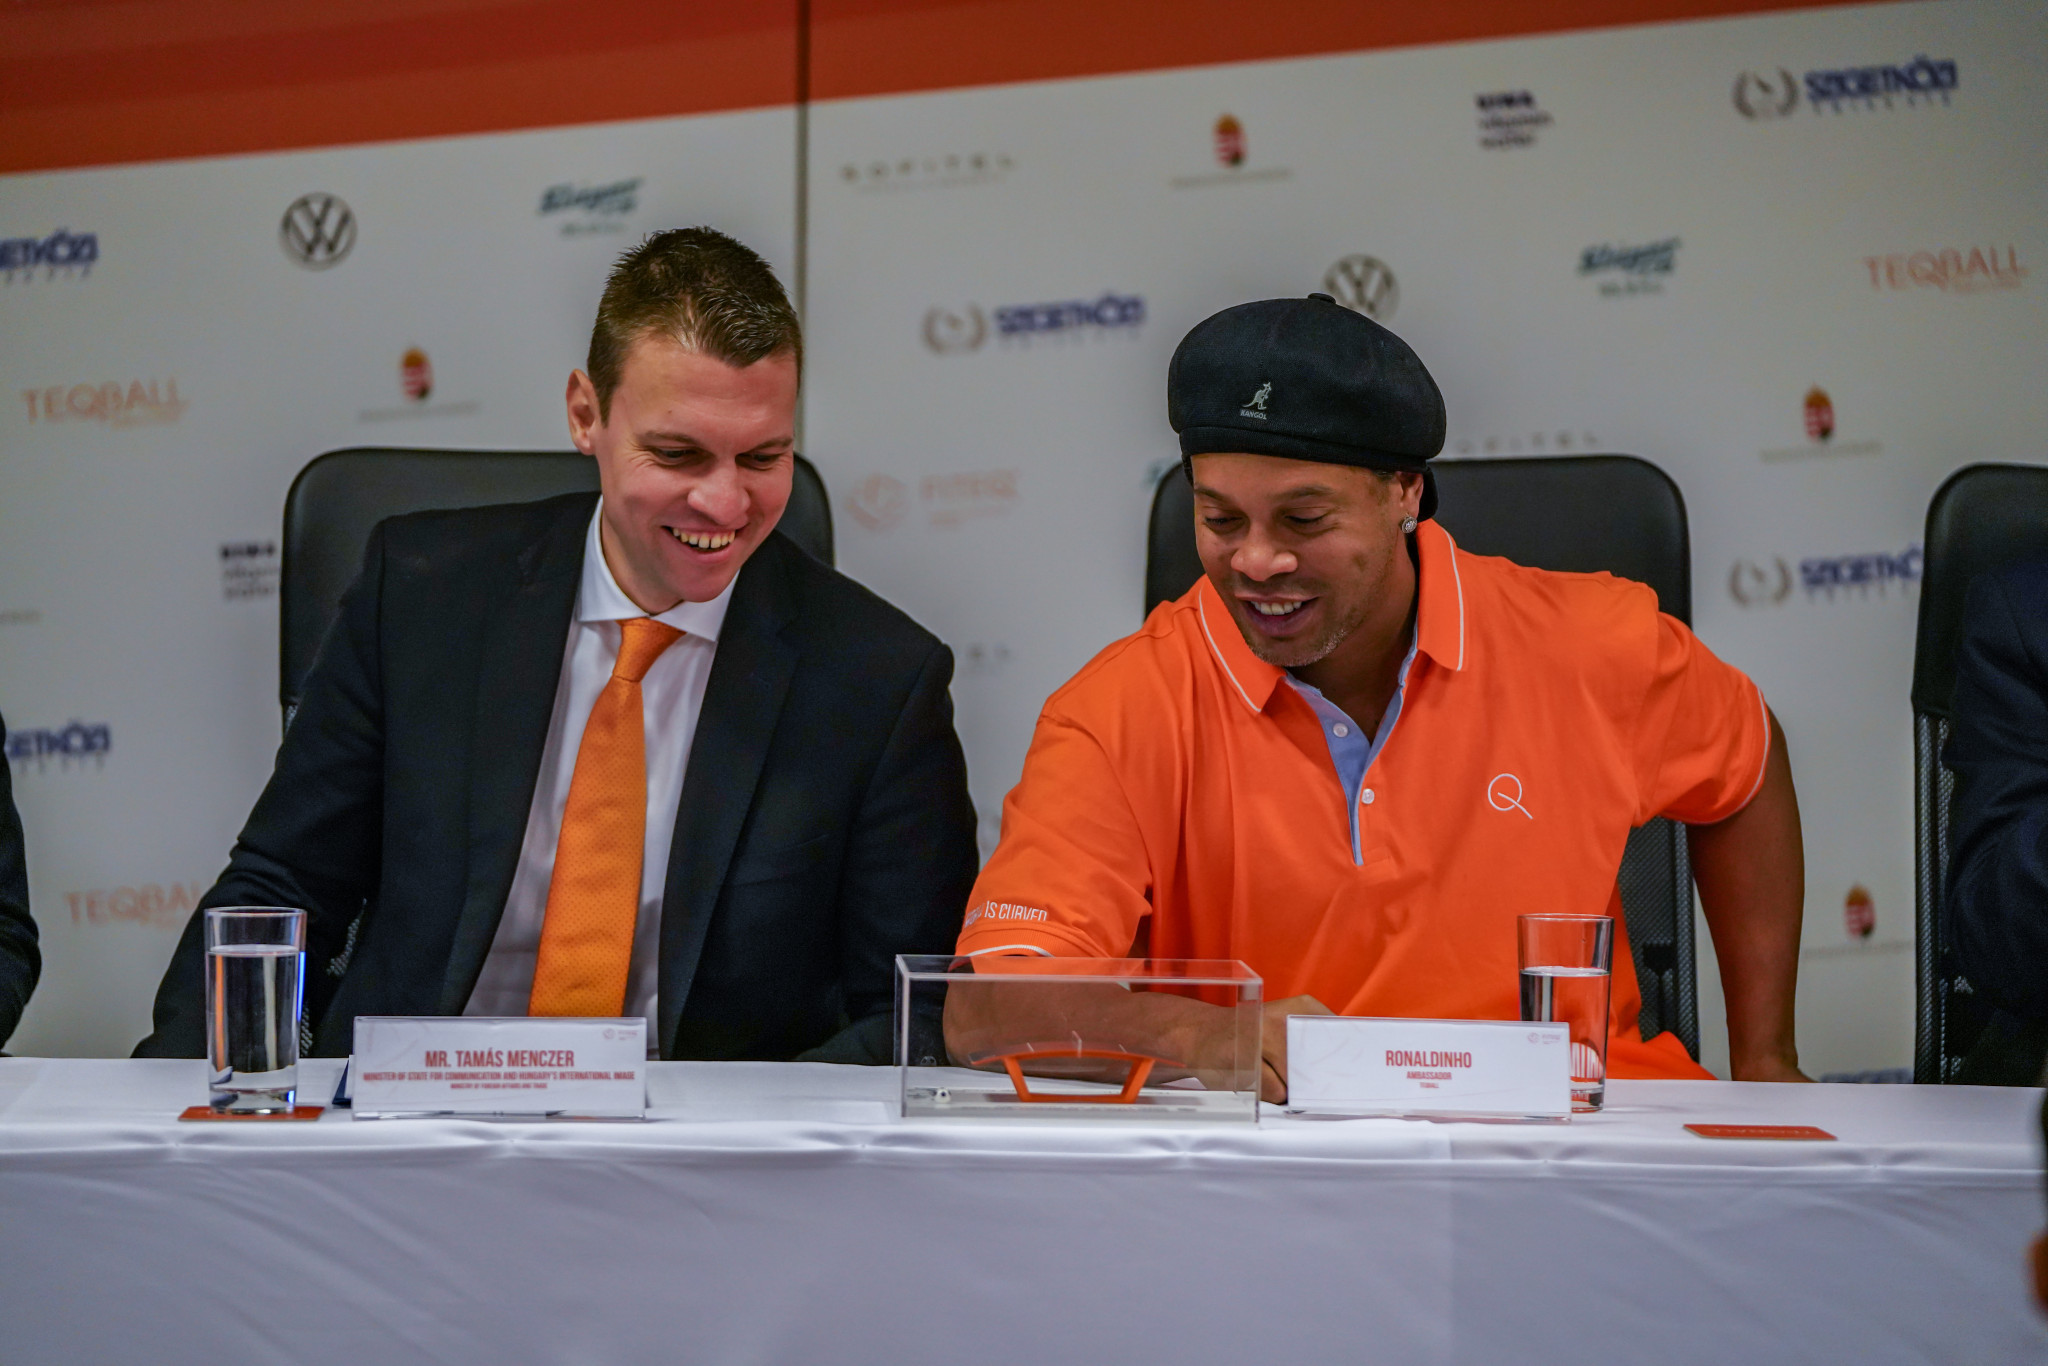 Ronaldinho then took part in a press conference ©FITEQ